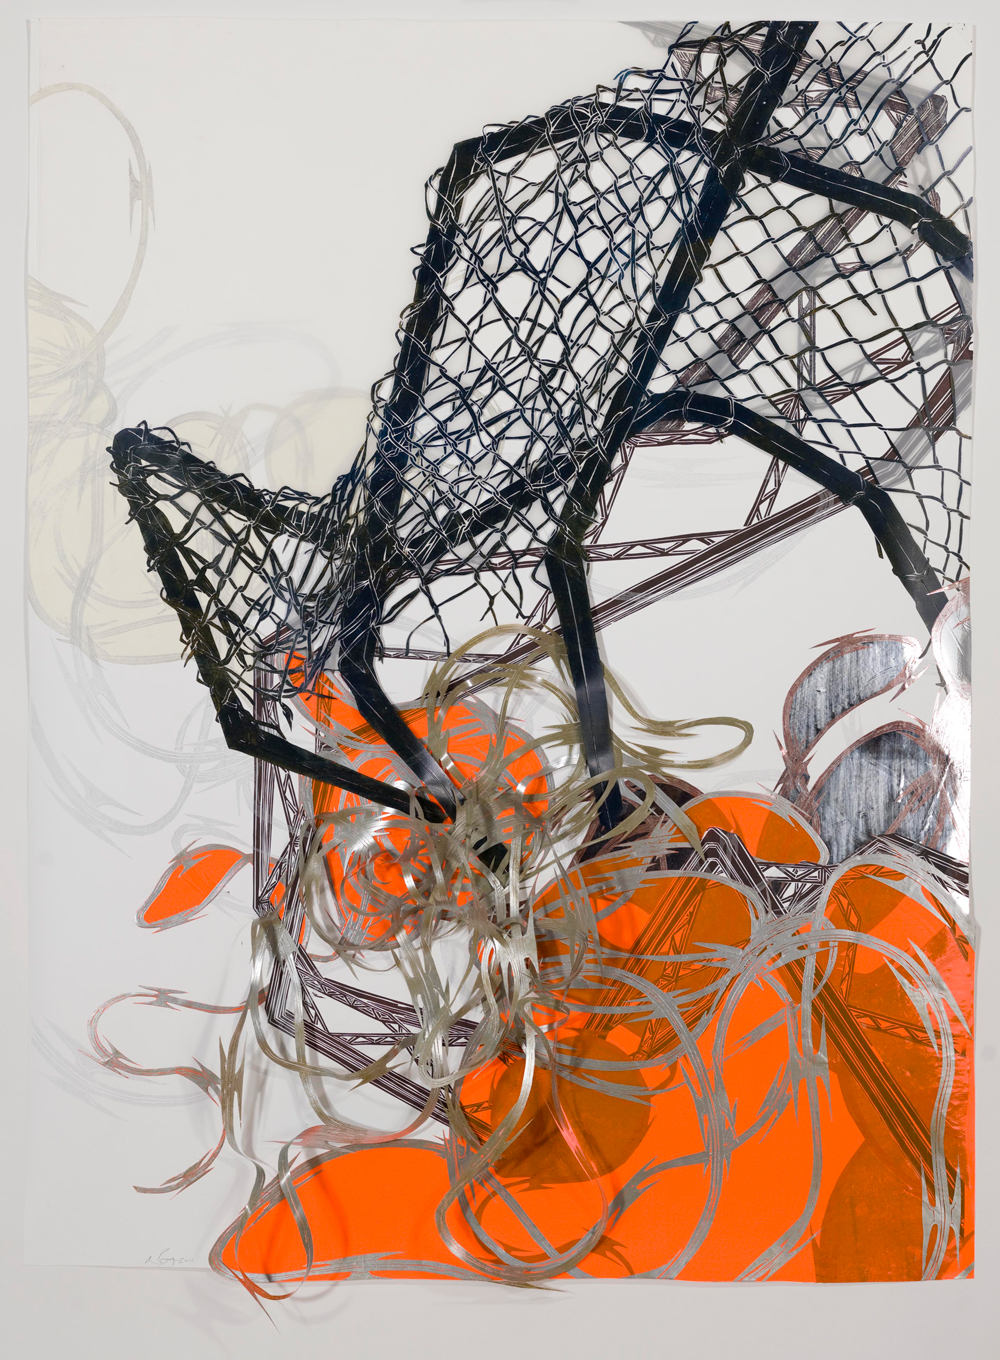 """Structural Detour 19: Chain-link Claw grapples with rowdy Razor Wire  2011; Woodcut on paper, mylar, plastic and reflective mylar, collage; 48"""" x 64""""; Published by Pace Editions"""